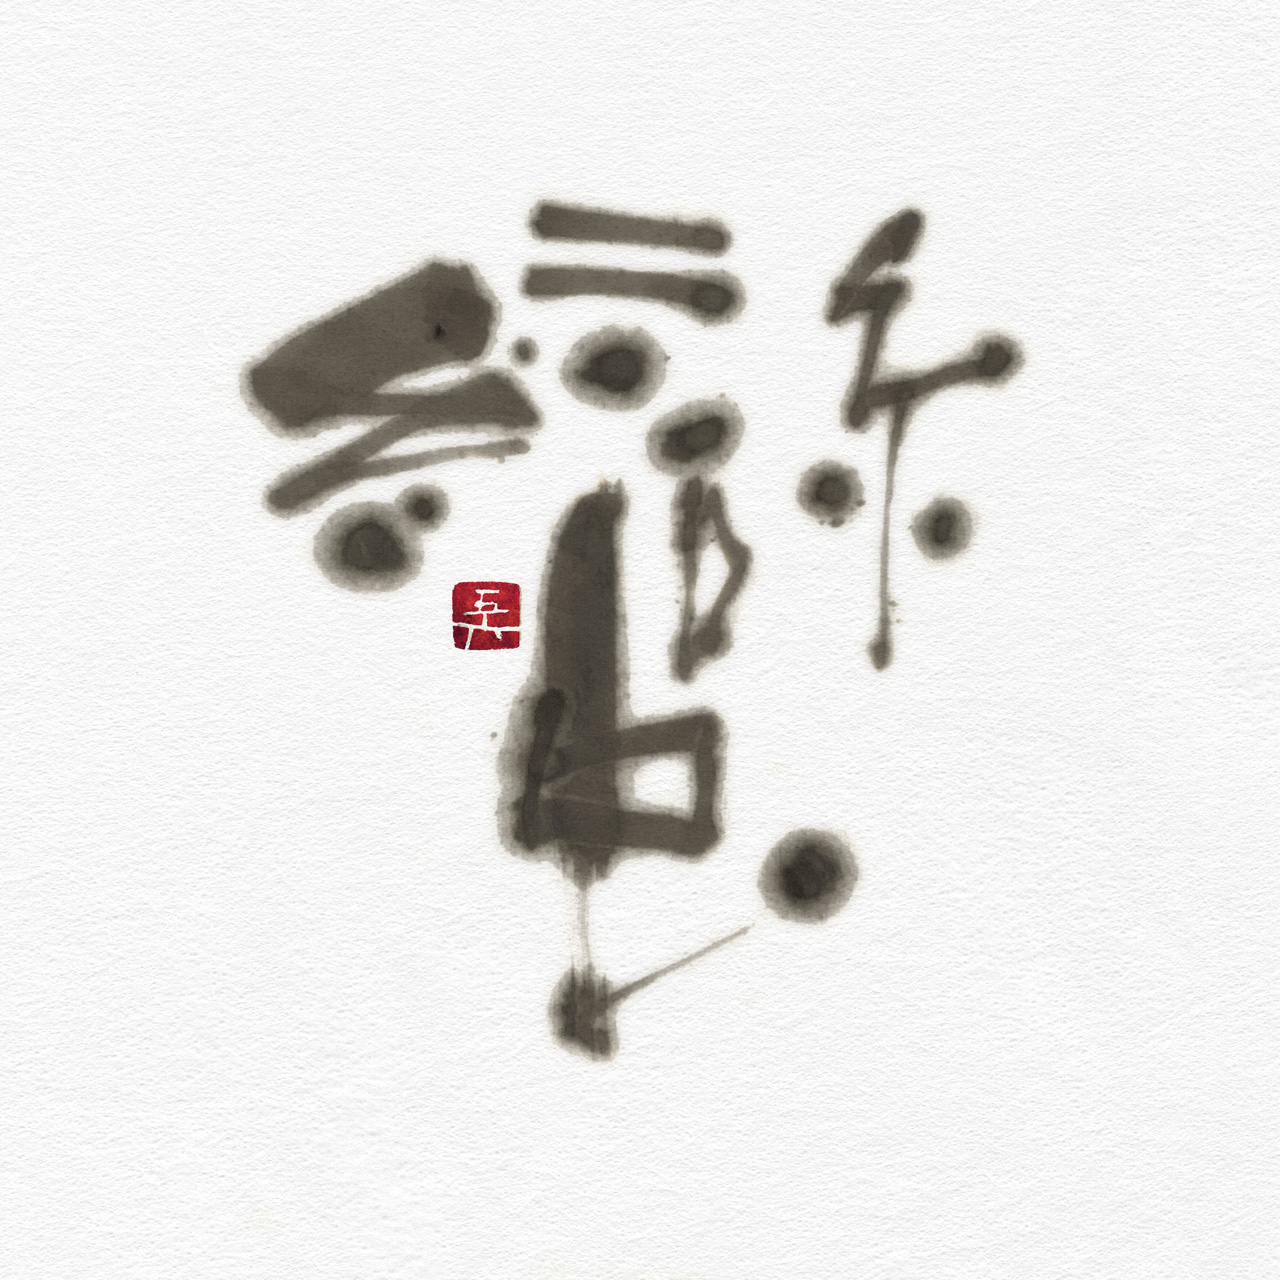 蛮 蠻 ban ebisu 言葉 書道作品 japaneseart japanesecalligraphy